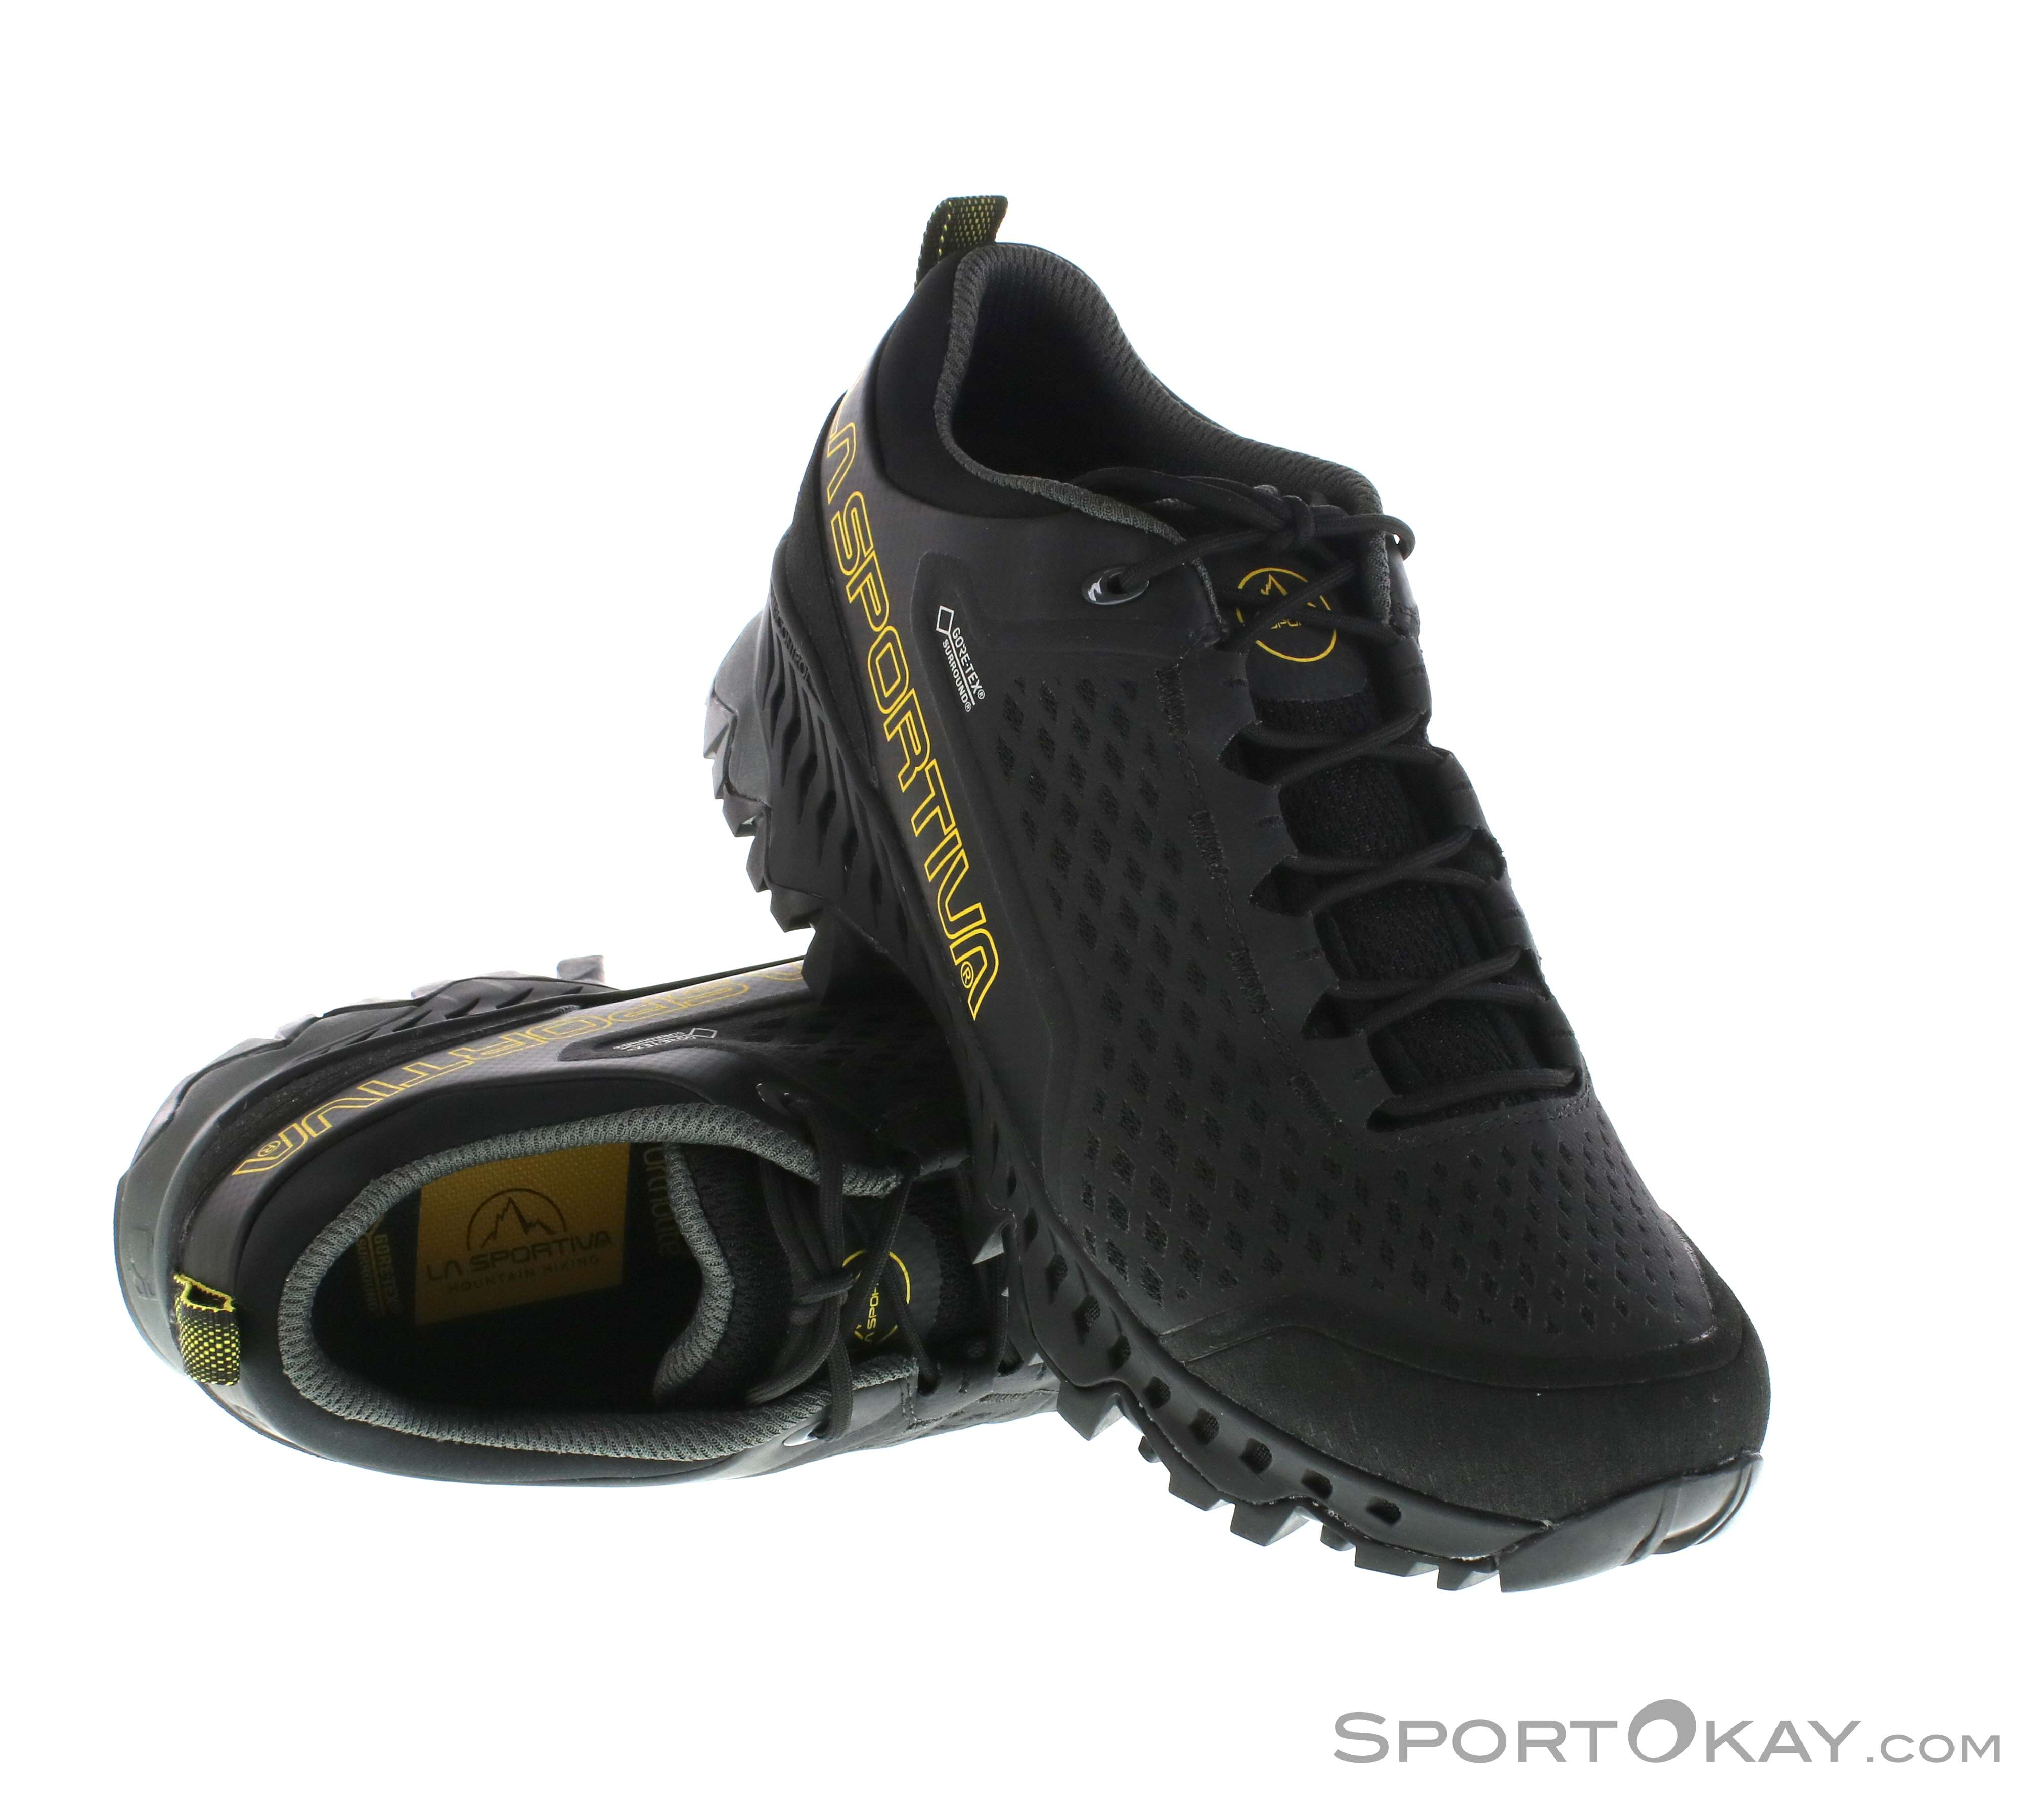 5575656c9ee La Sportiva La Sportiva Spire GTX Surround Mens Trekking Shoes GoreTex